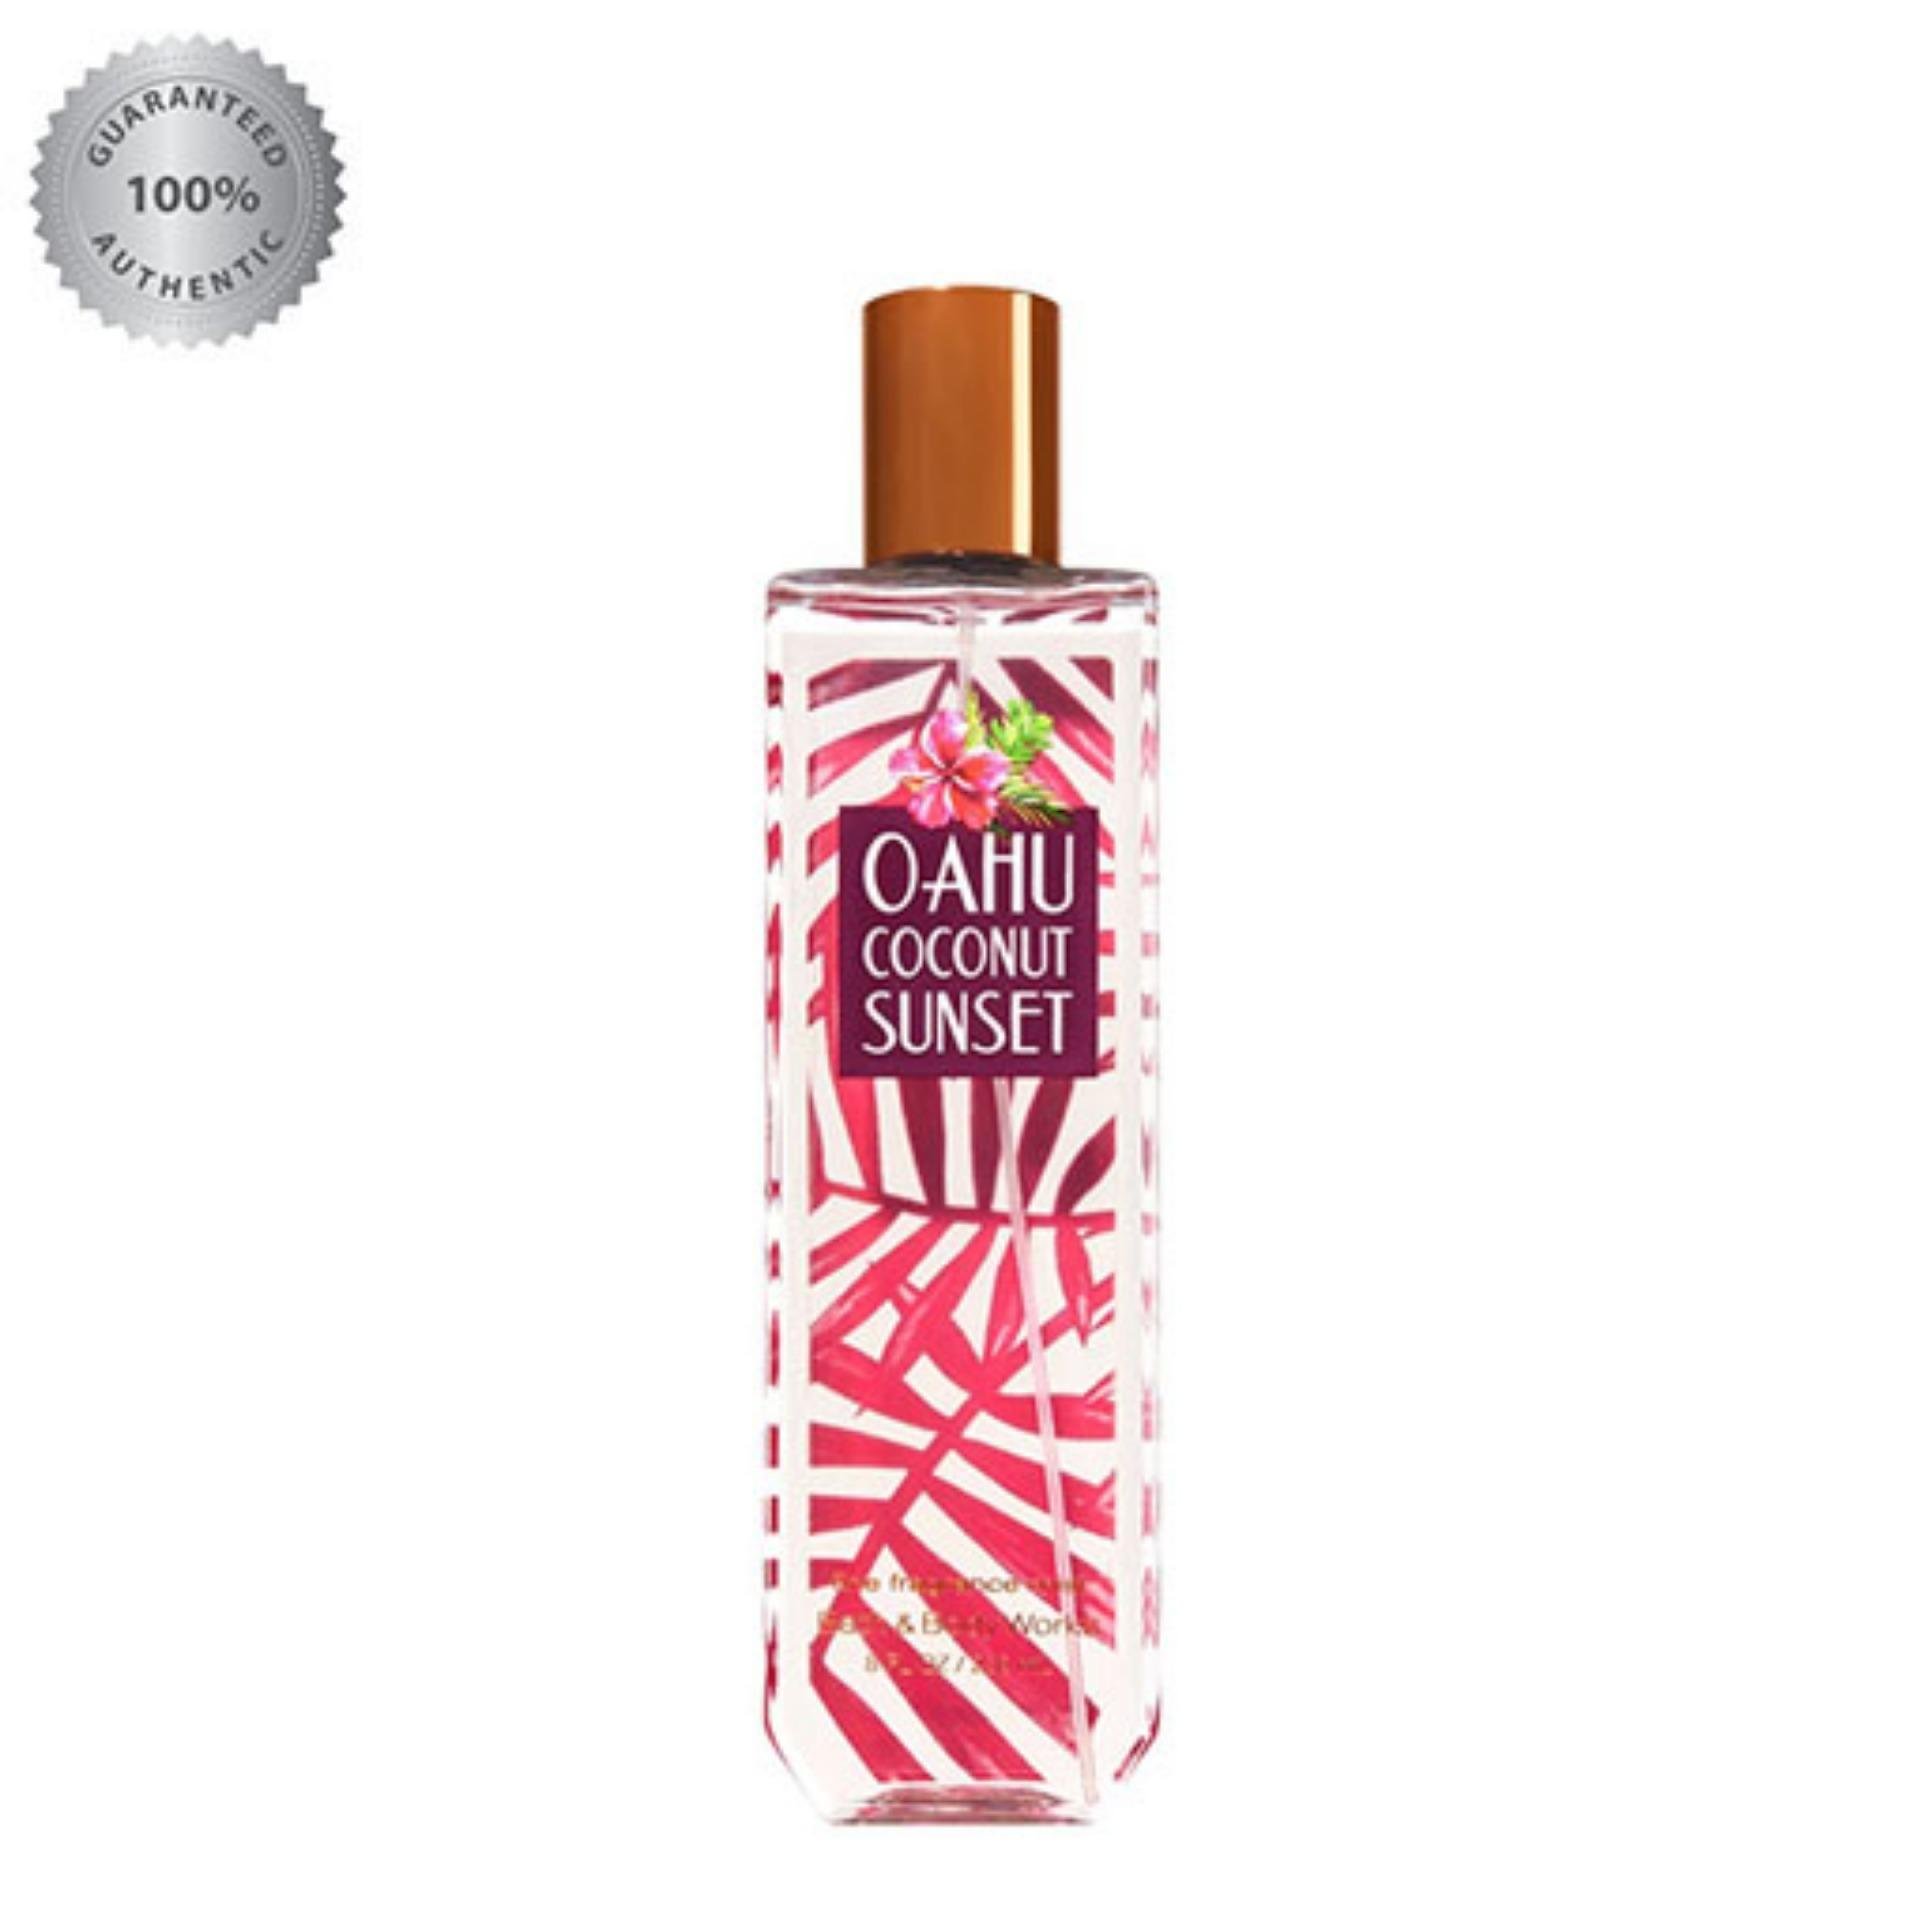 Bath & Body Works OAHU COCONUT SUNSET Fine Fragrance mist 236ML